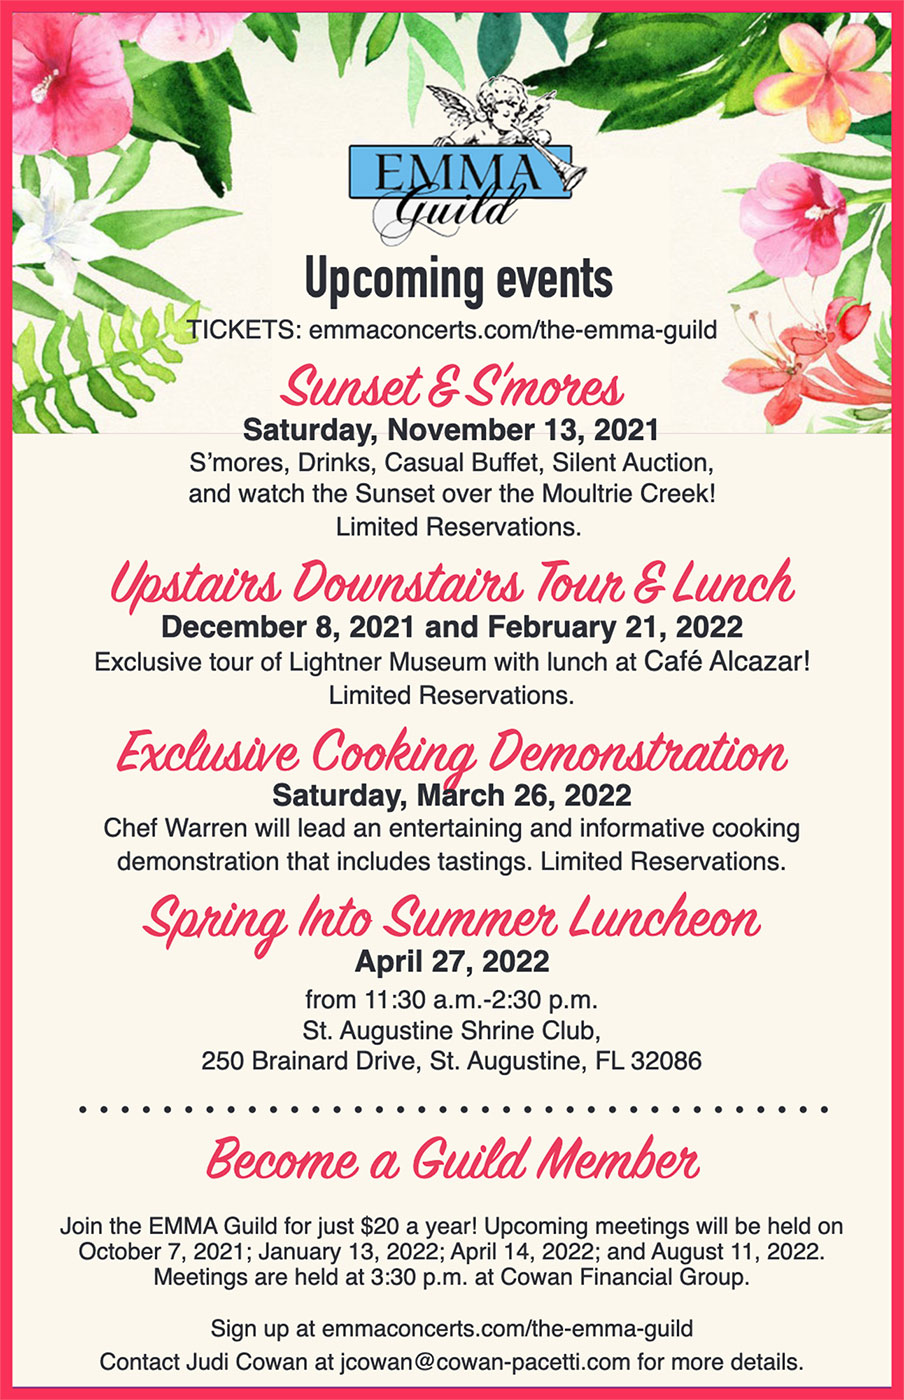 EMMA Guild Upcoming Events